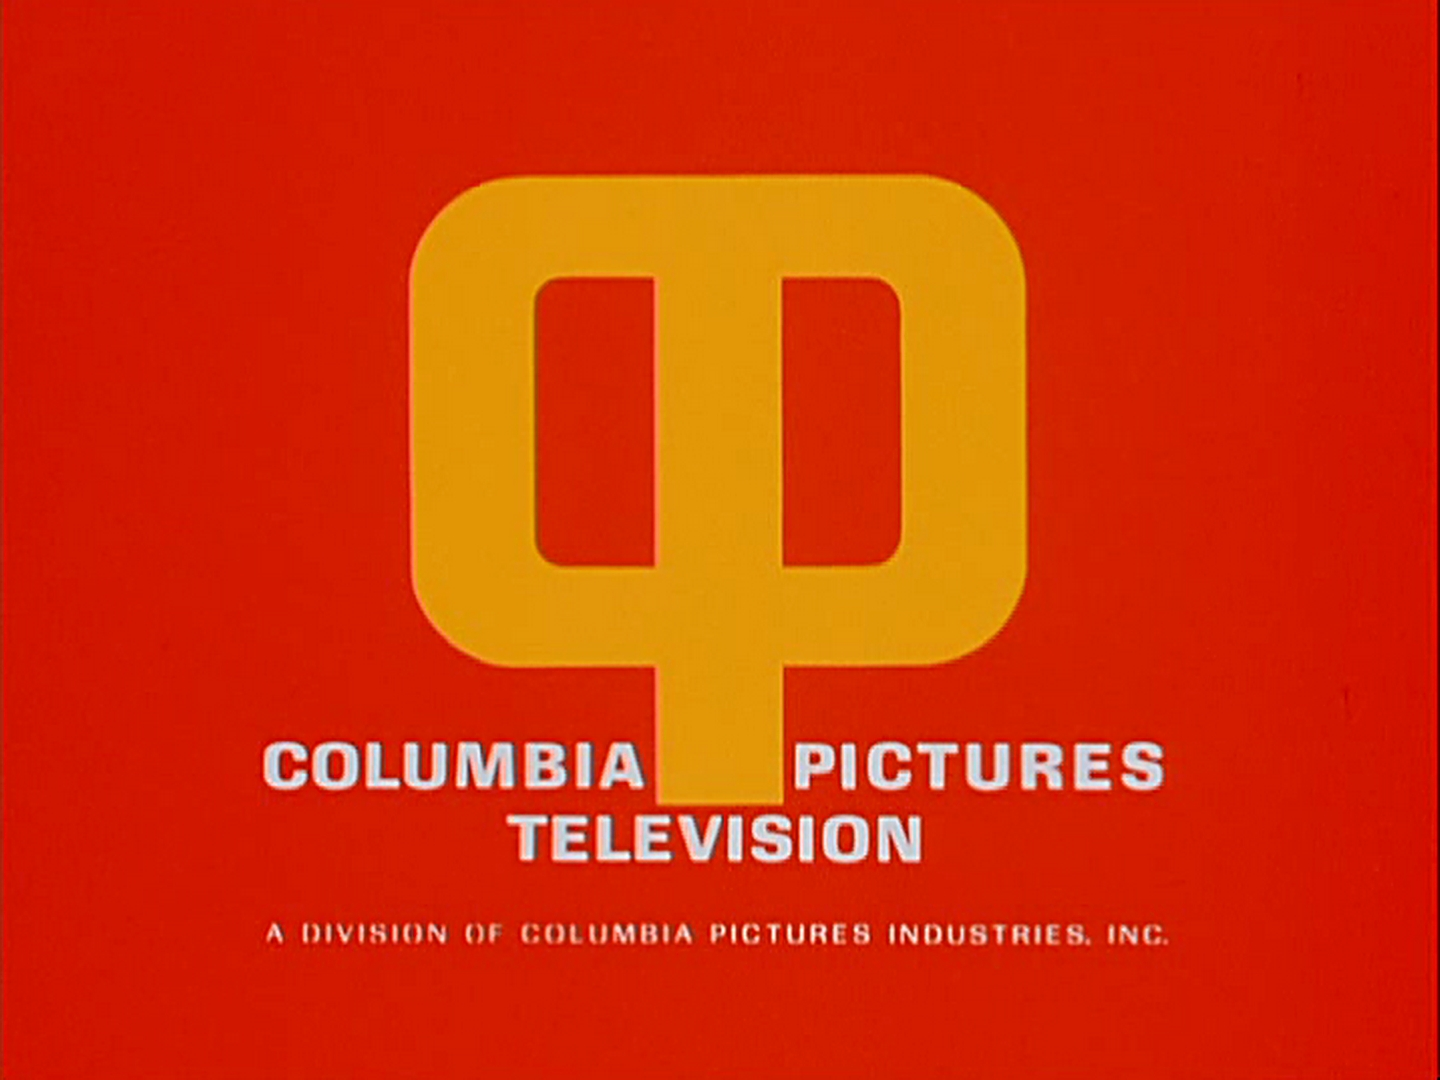 Columbia Pictures Television/On-Screen Variations